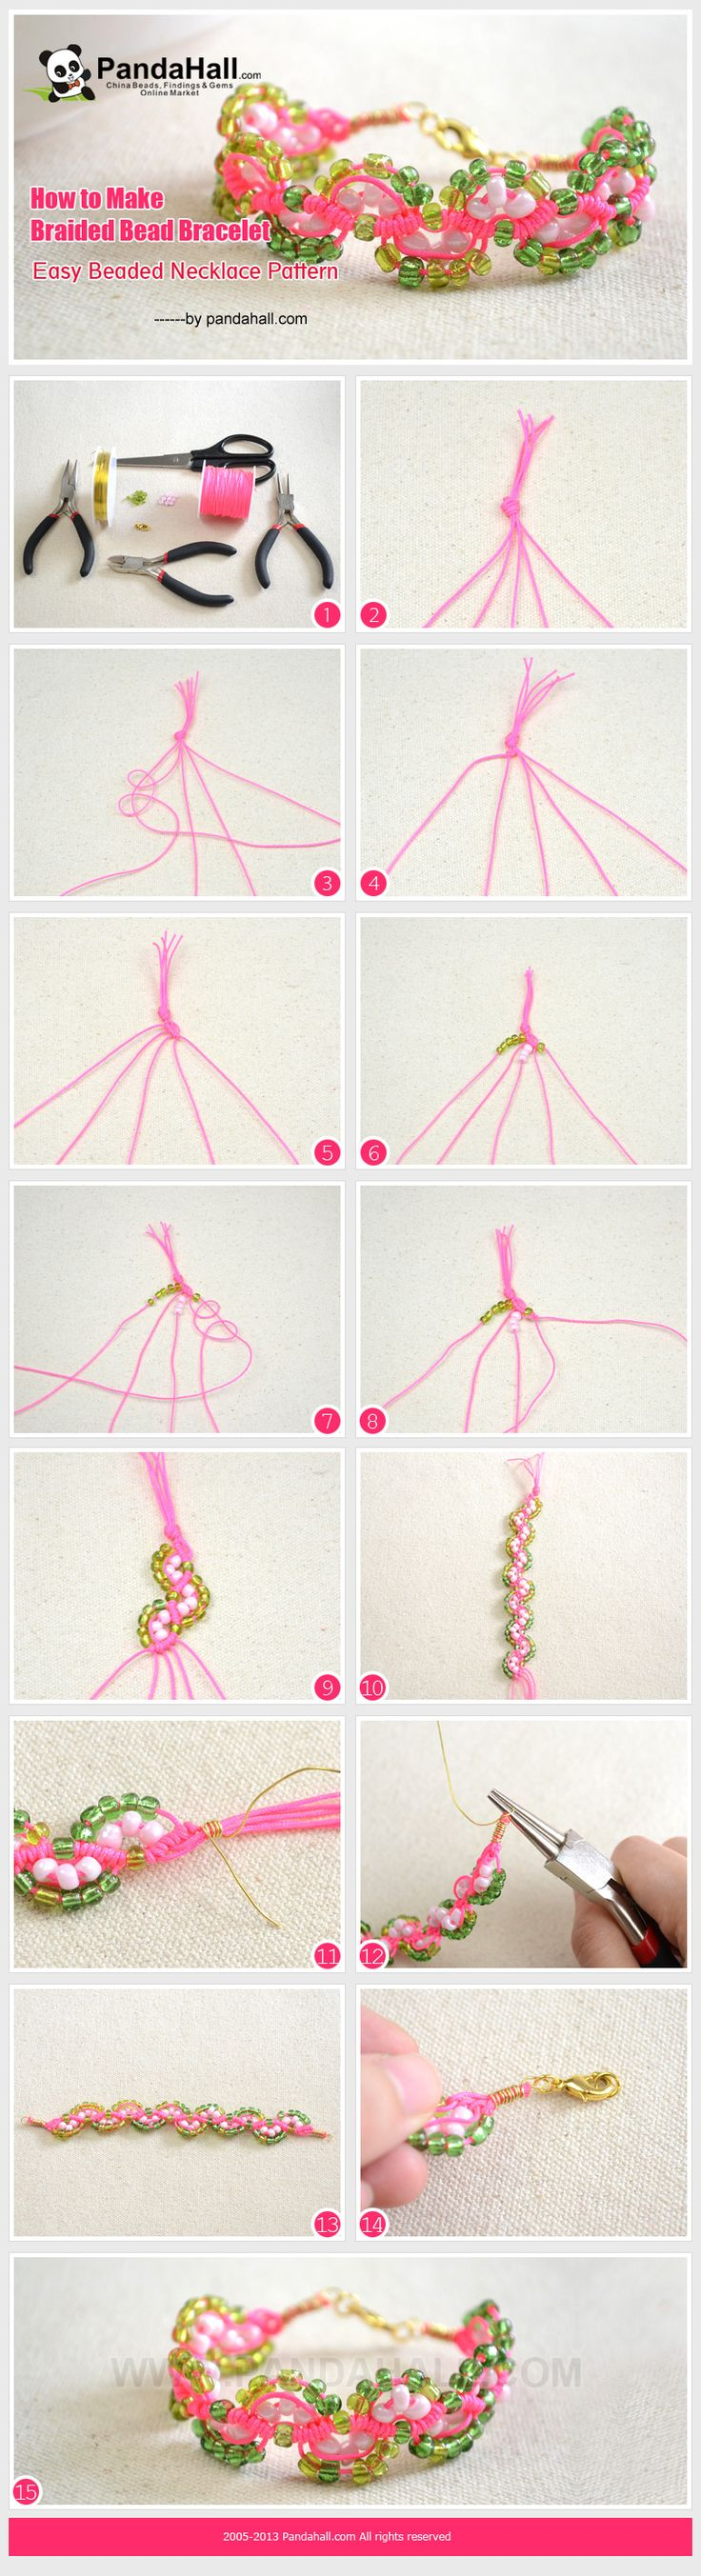 How to Make Braided Bead Bracelet – Easy friendship bracelet Pattern from pandahall.com